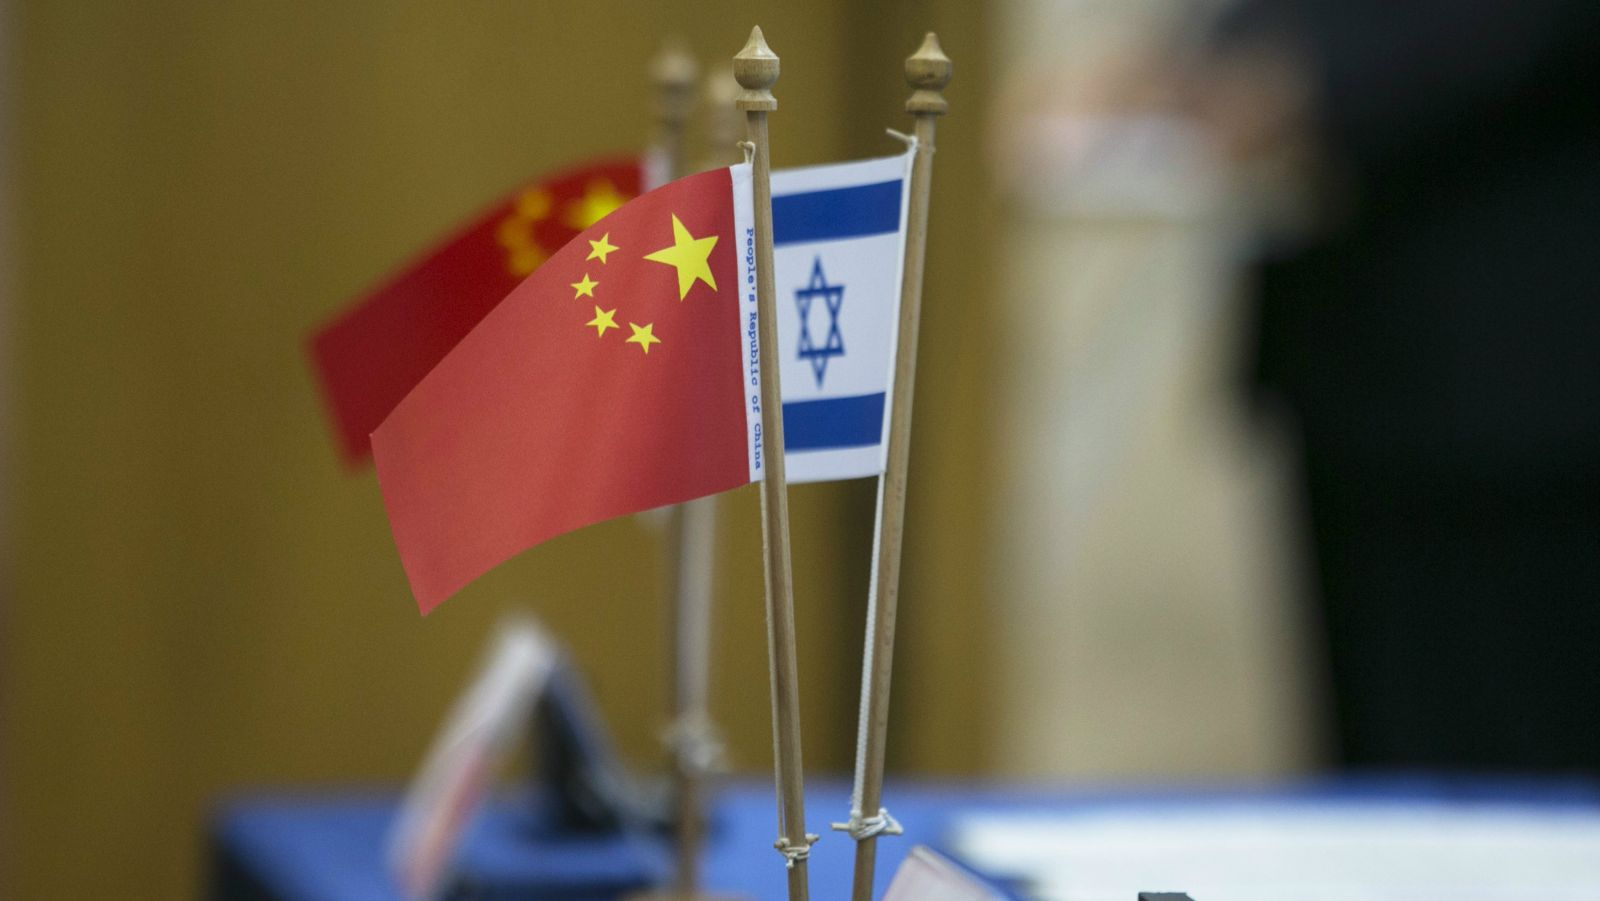 Israel's Very Popular On Chinese Social Media—Thanks To China's Online Islamophobia